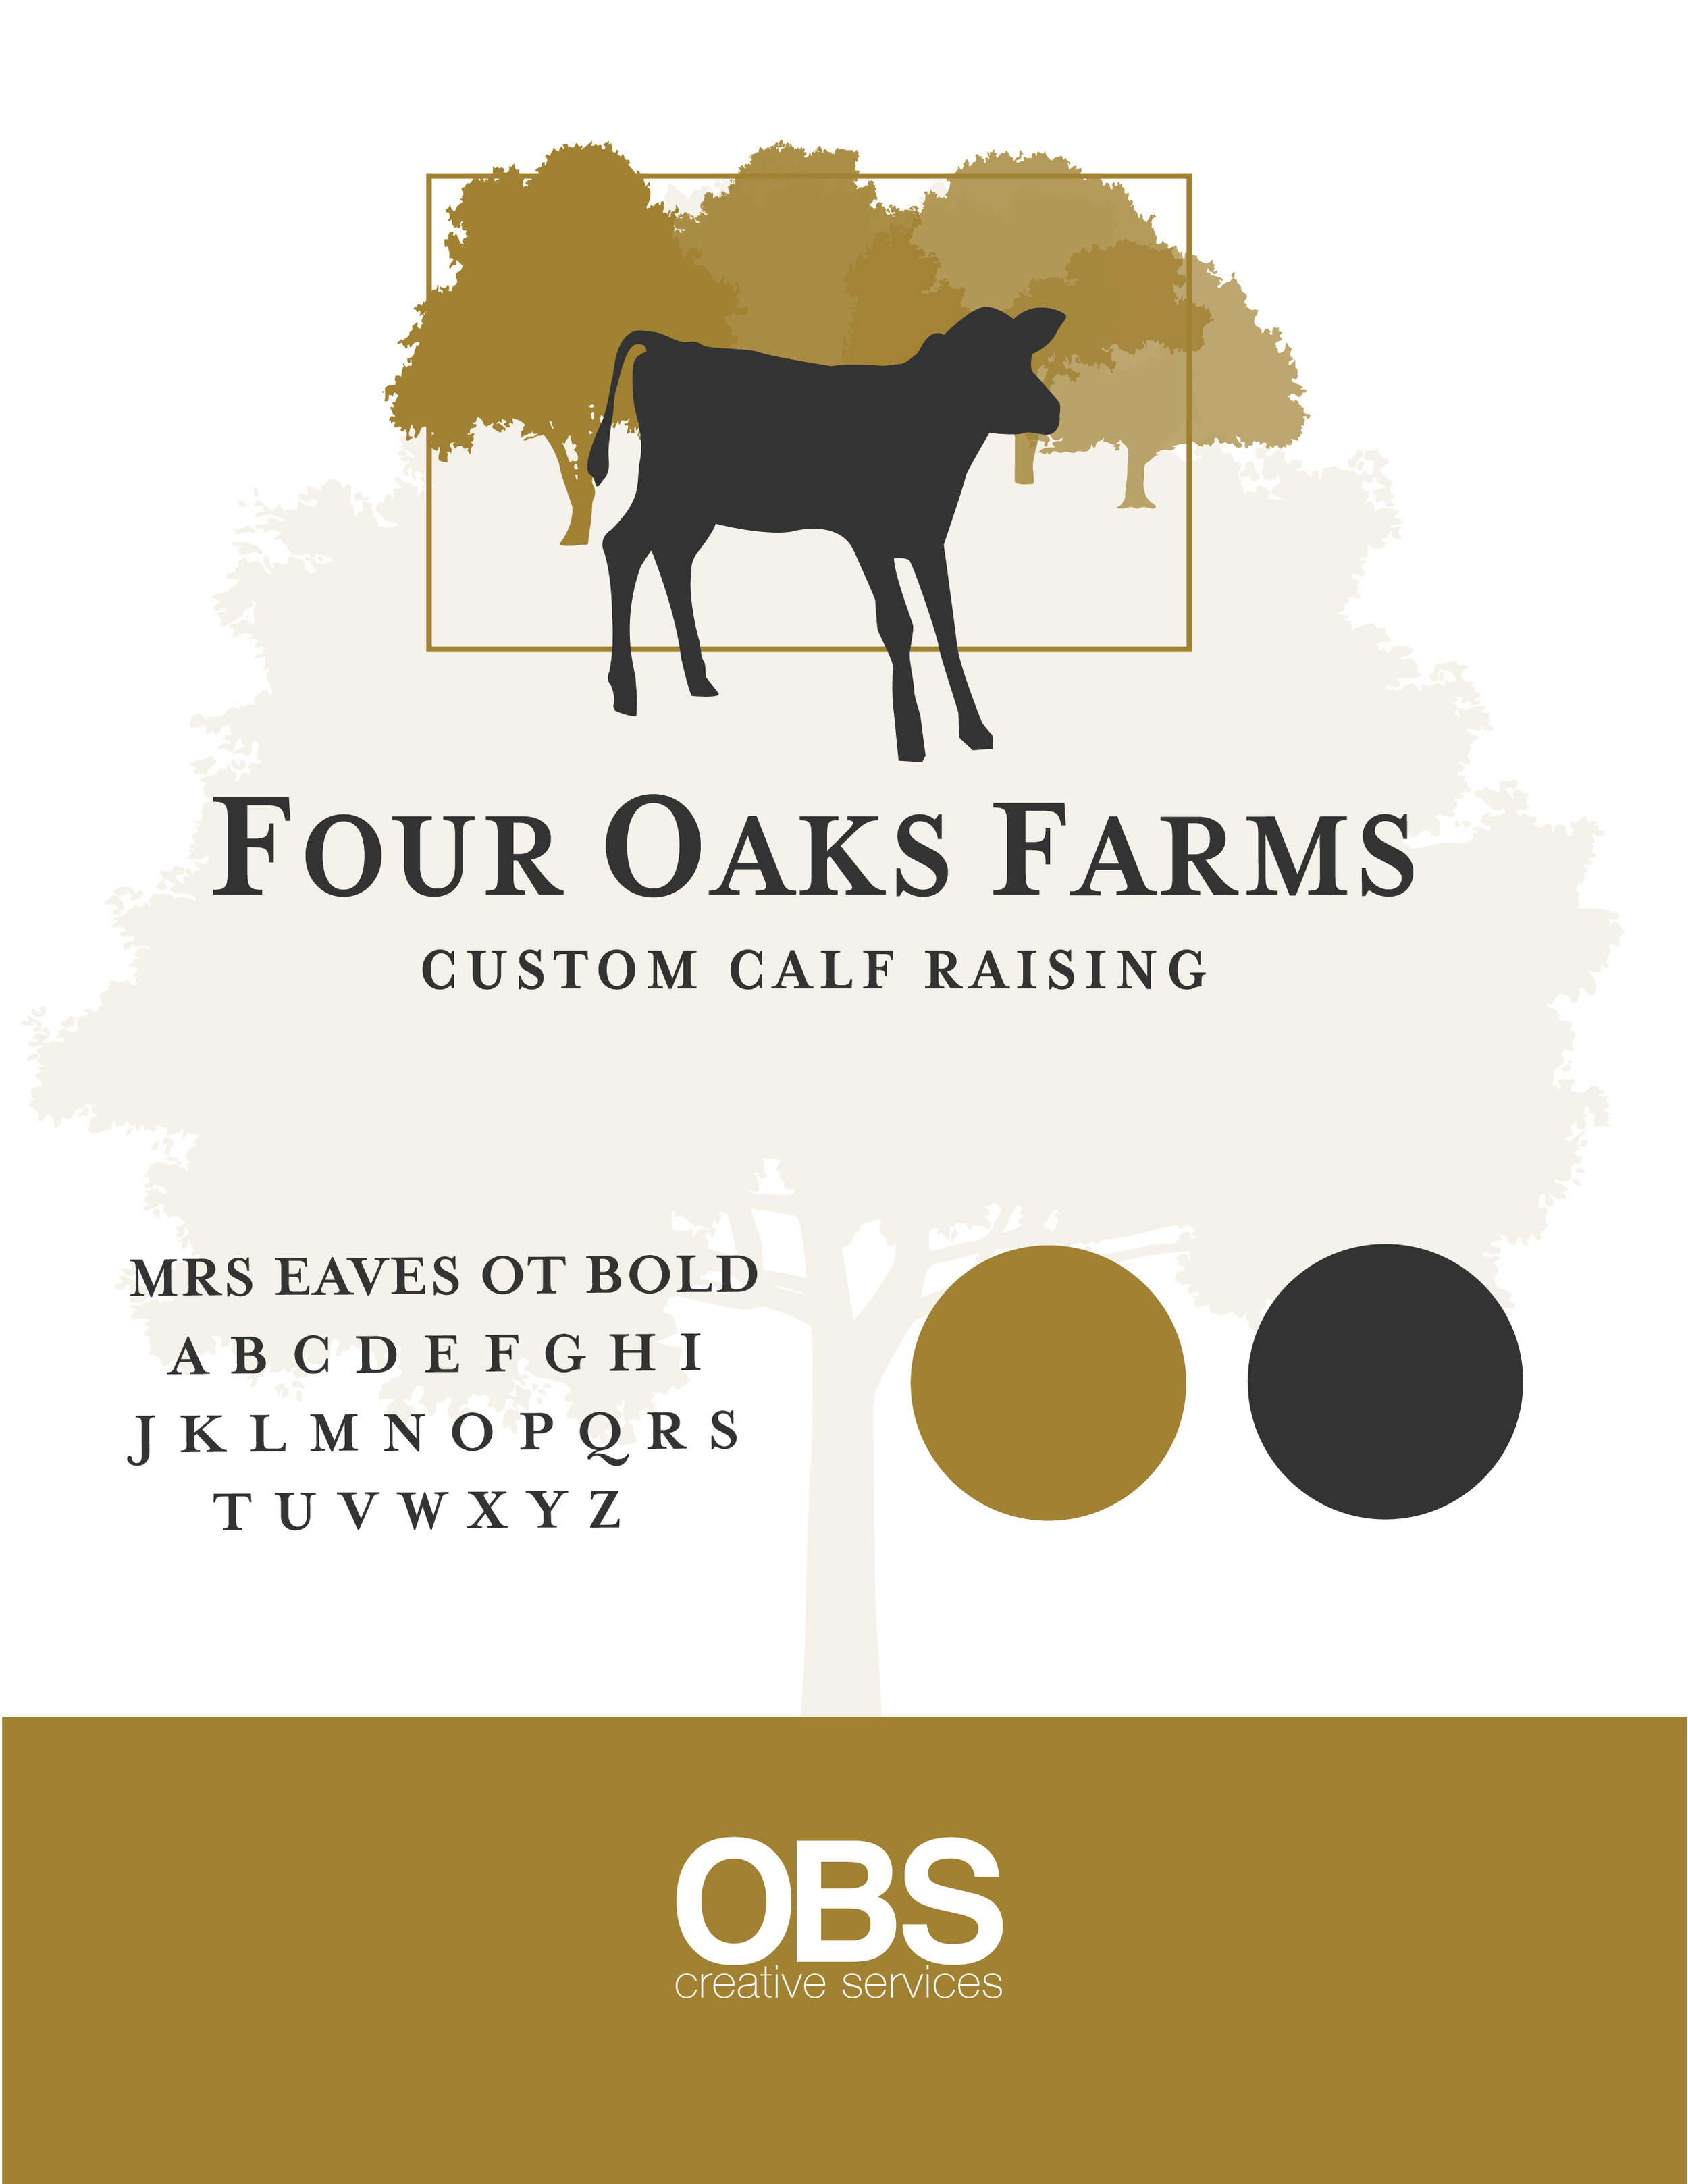 Four Oaks Farms BrandFair Oaks Farms.jpg